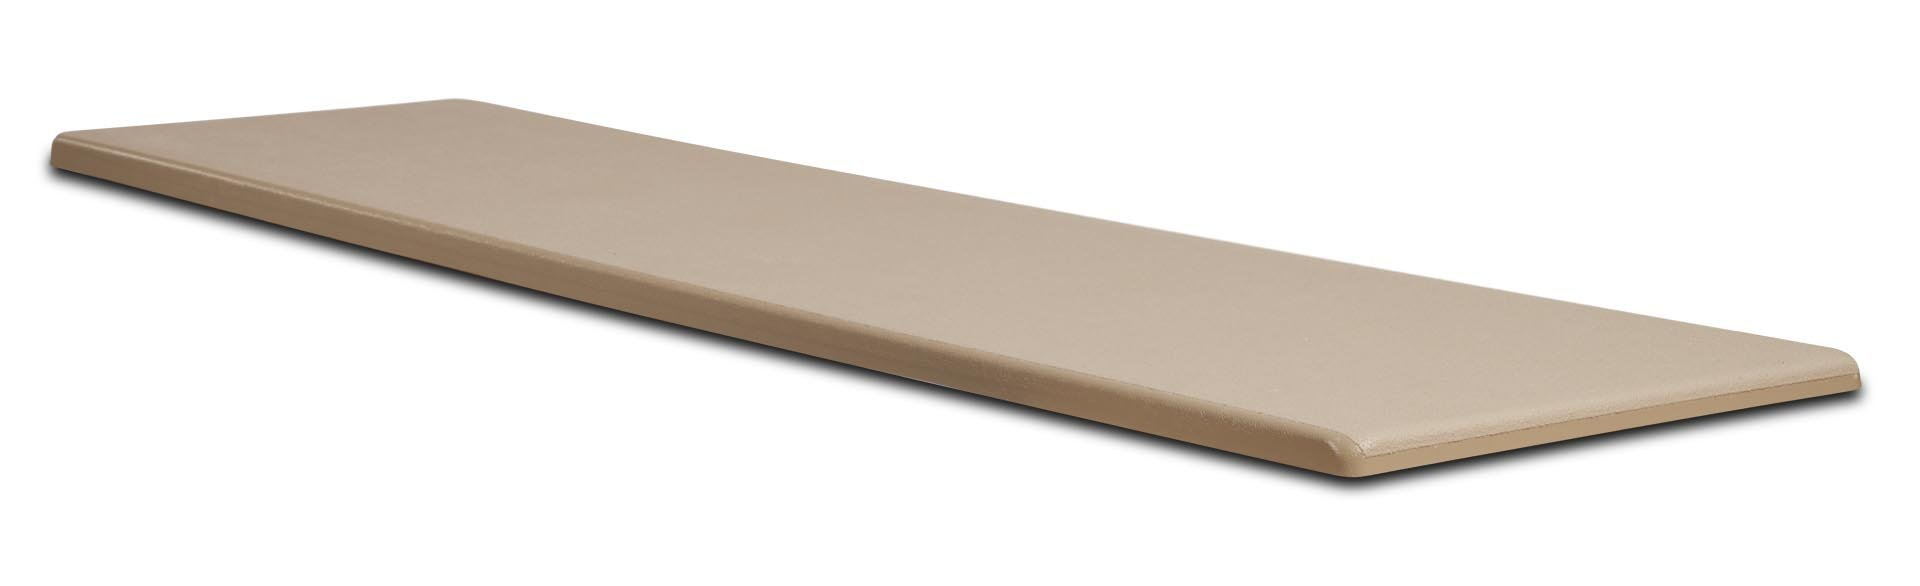 S.R. Smith 66-209-268S10T Fibre-Dive Replacement Diving Board, 8-Feet, Taupe